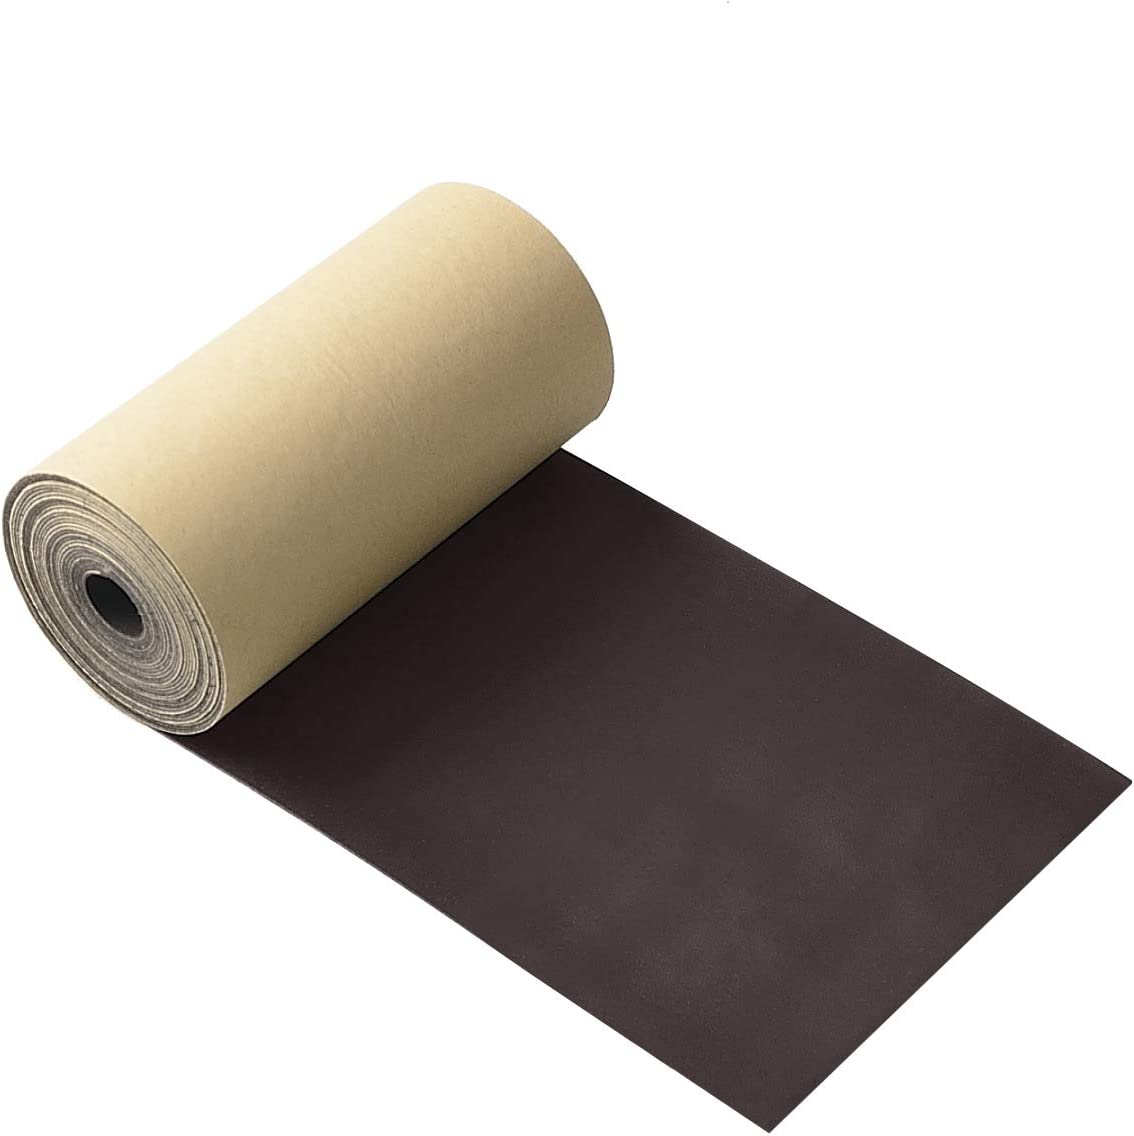 Leather Repair Tape 6X120 Inch Self-Adhesive Leather Repair Patch for Sofas, Couch, Furniture, Drivers Handbags, Jackets, Dark Brown